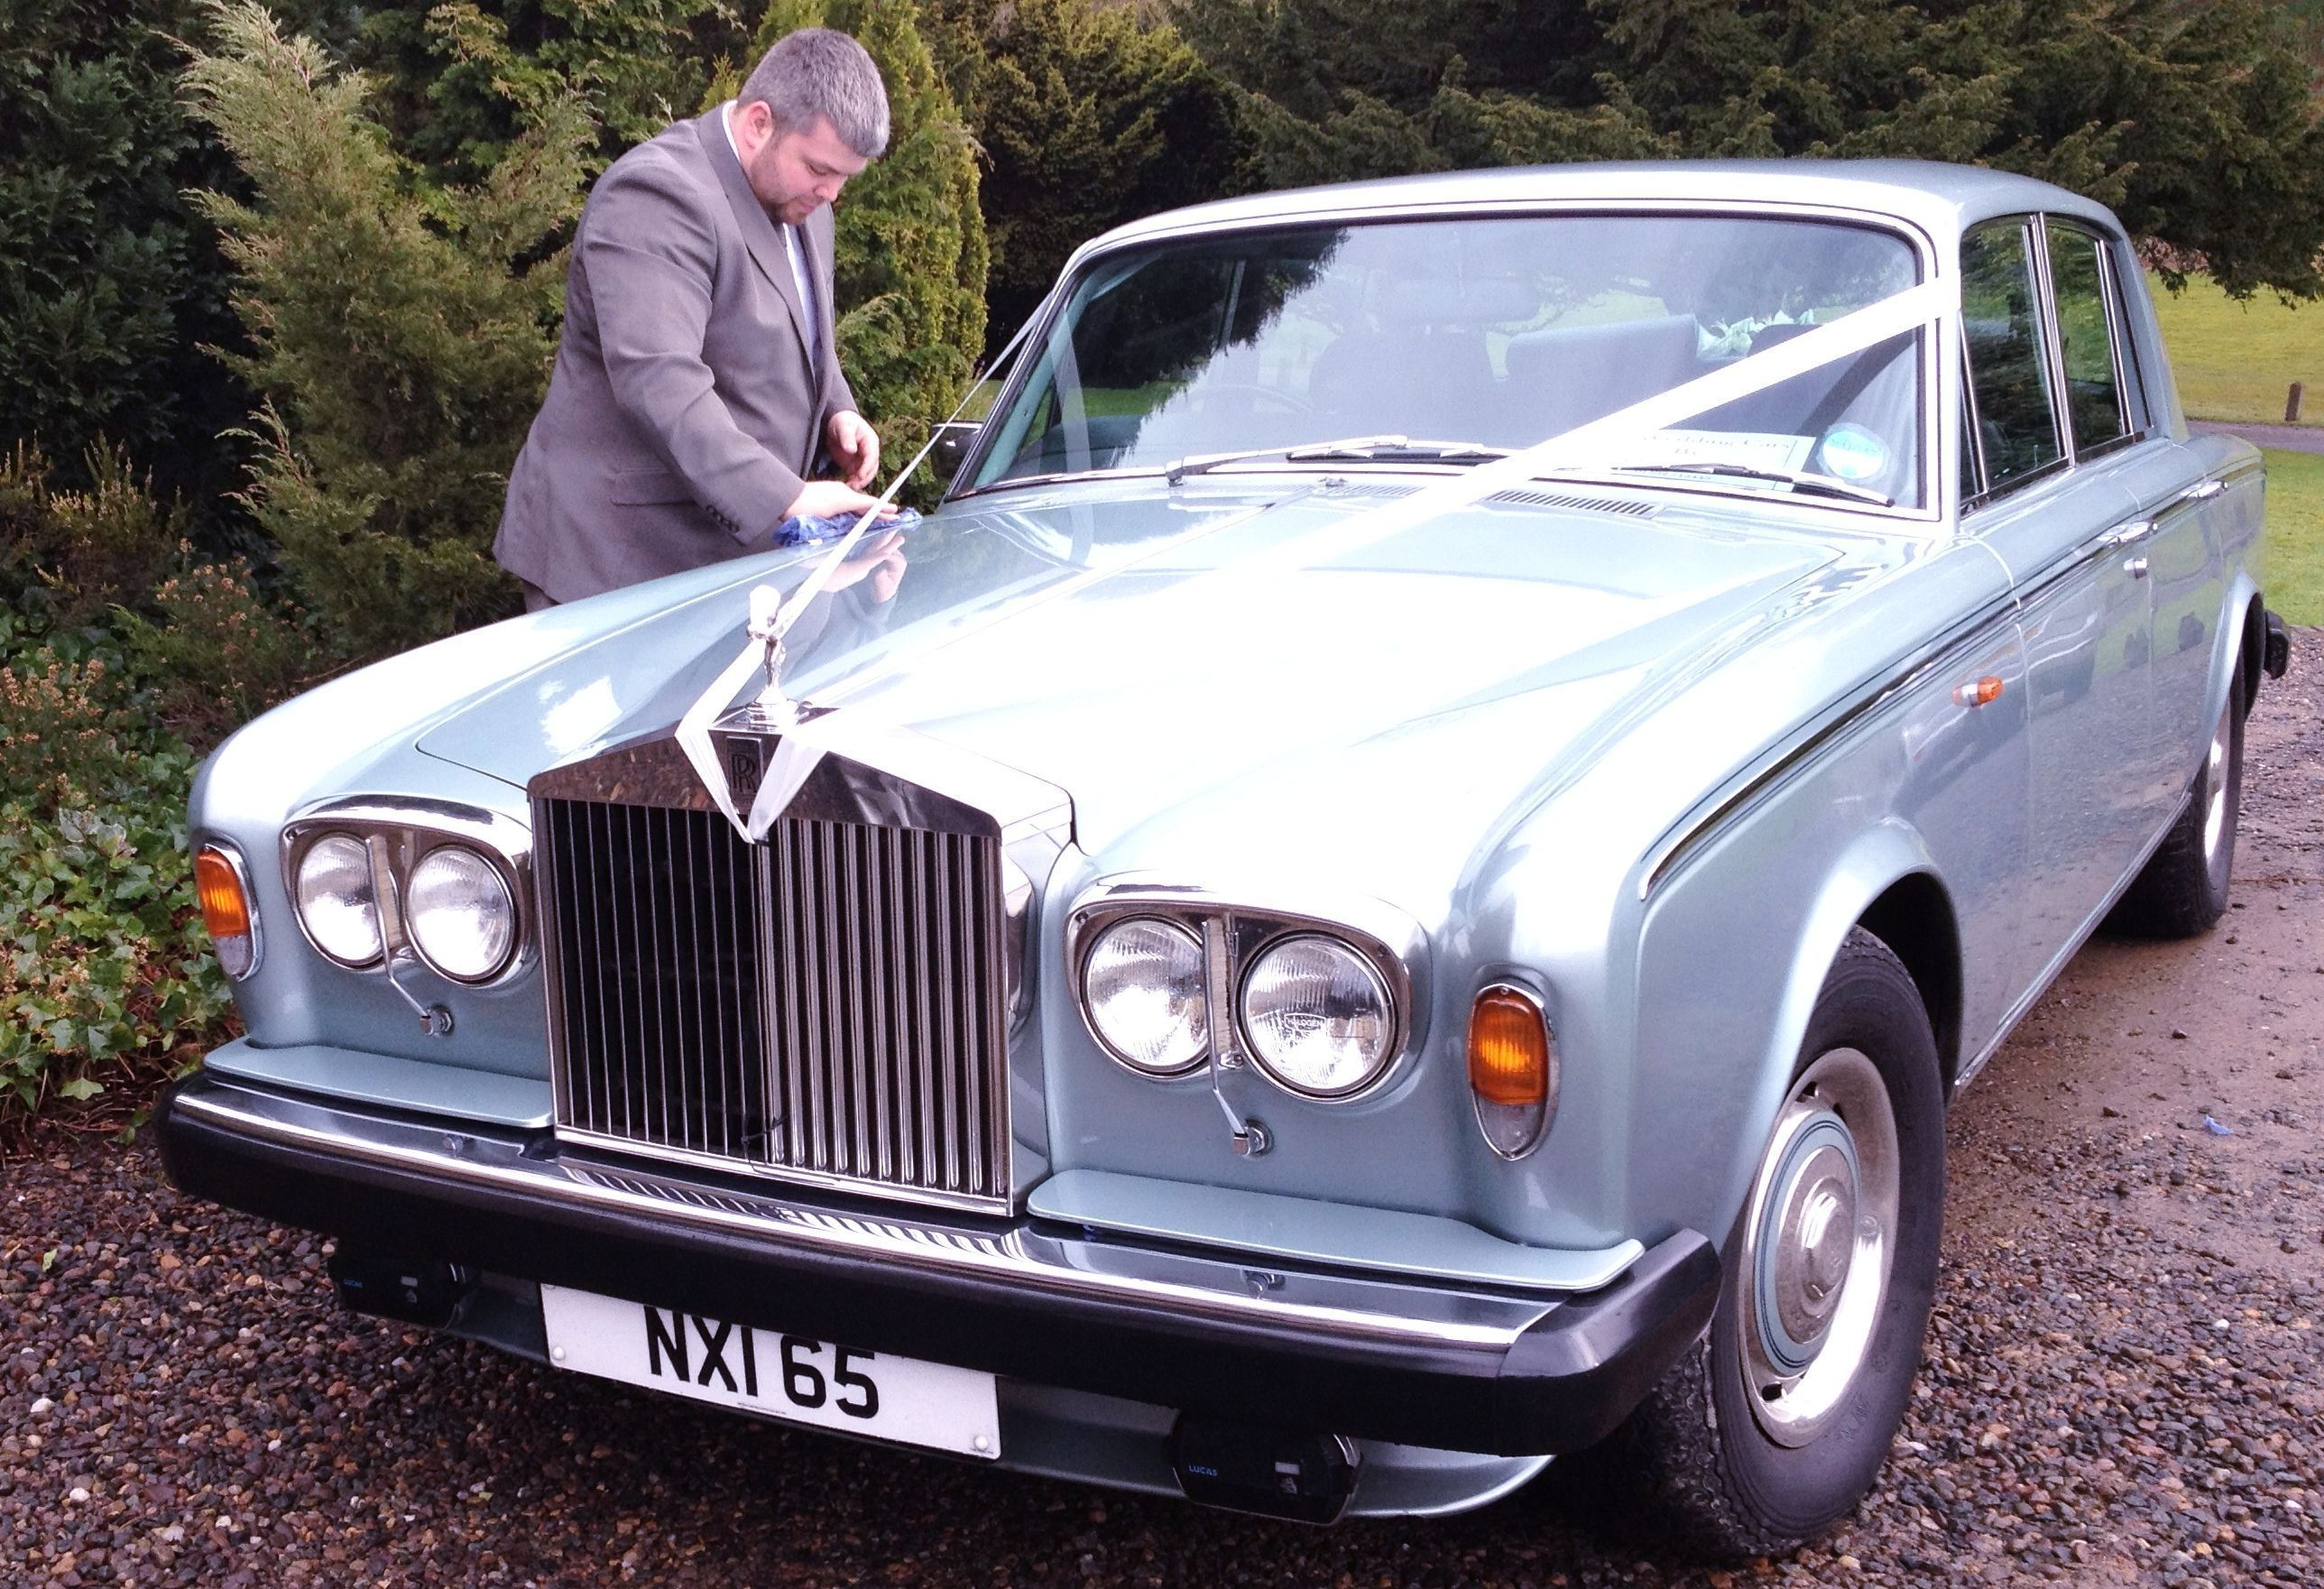 My Brother Barry Making Sure Our Rolls Royce Wedding Car Is Shinning Like A New My Brother Barry Making Sure Our In 2020 Rolls Royce Wedding Car Hire Wedding Car